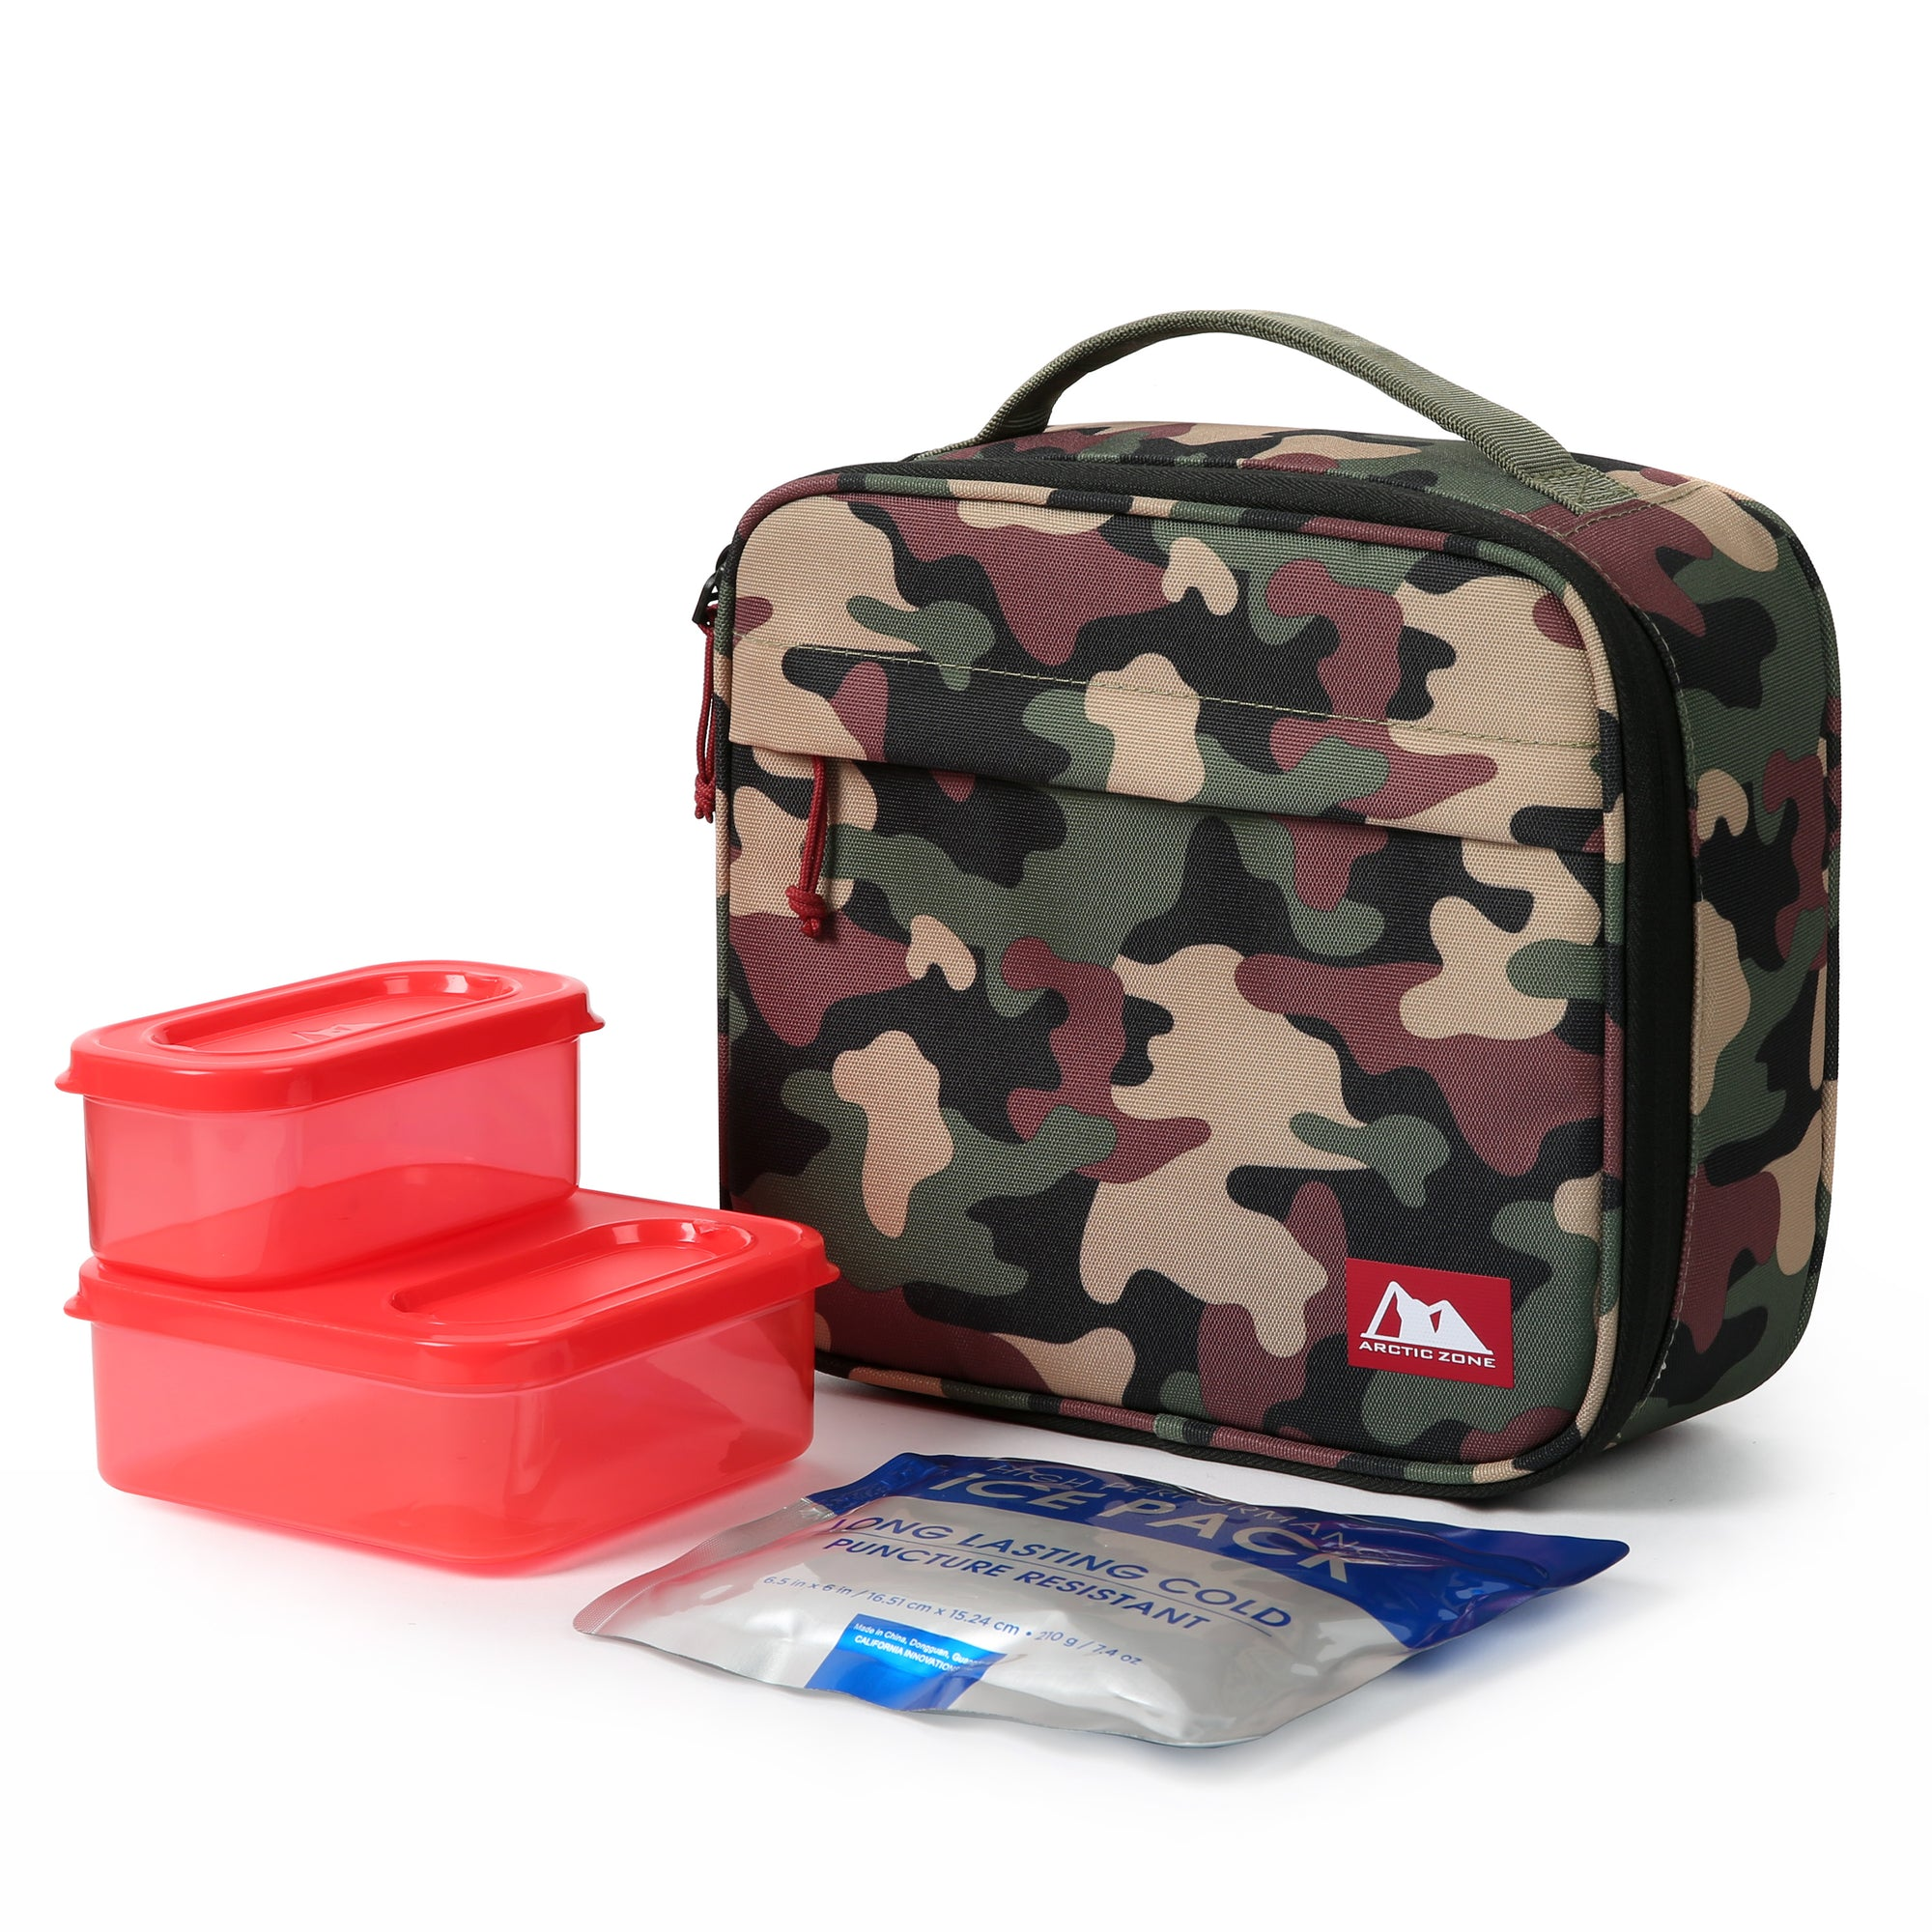 Arctic Zone® Classics Lunch Box with 210gm Ice pack & 4 Piece Container Set - Camo